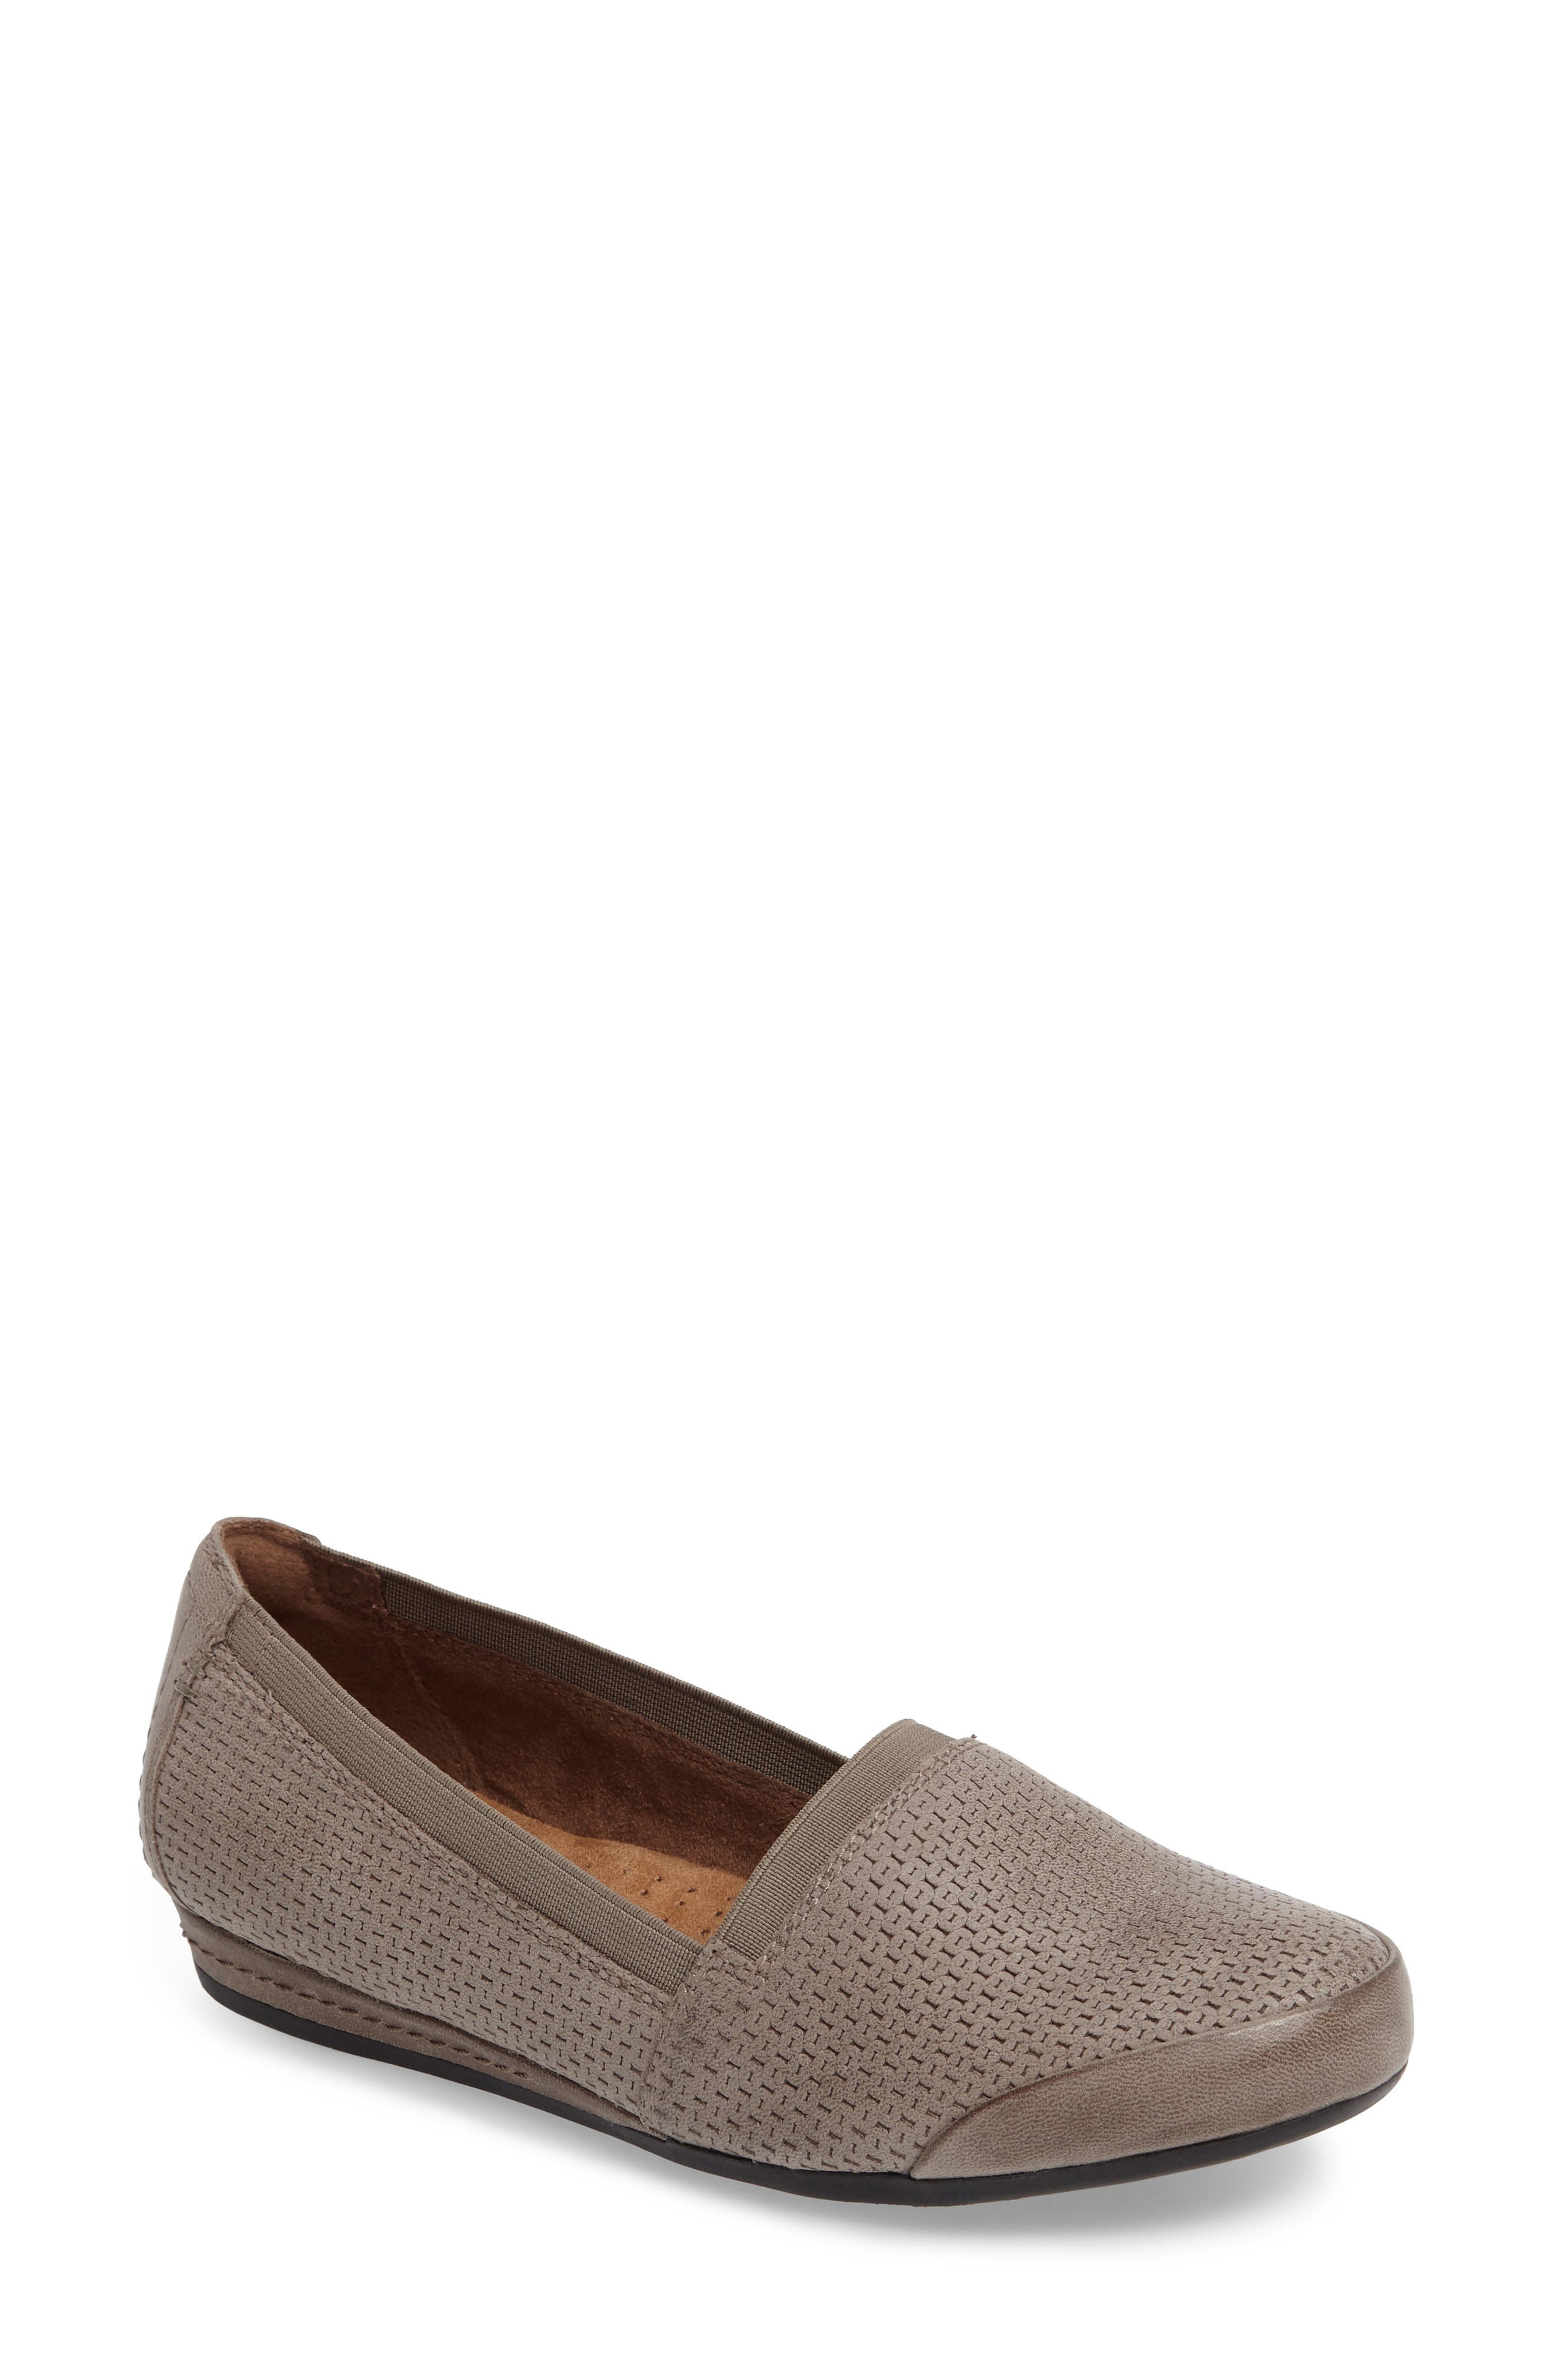 Main Image - Rockport Cobb Hill Galway Textured Flat (Women)